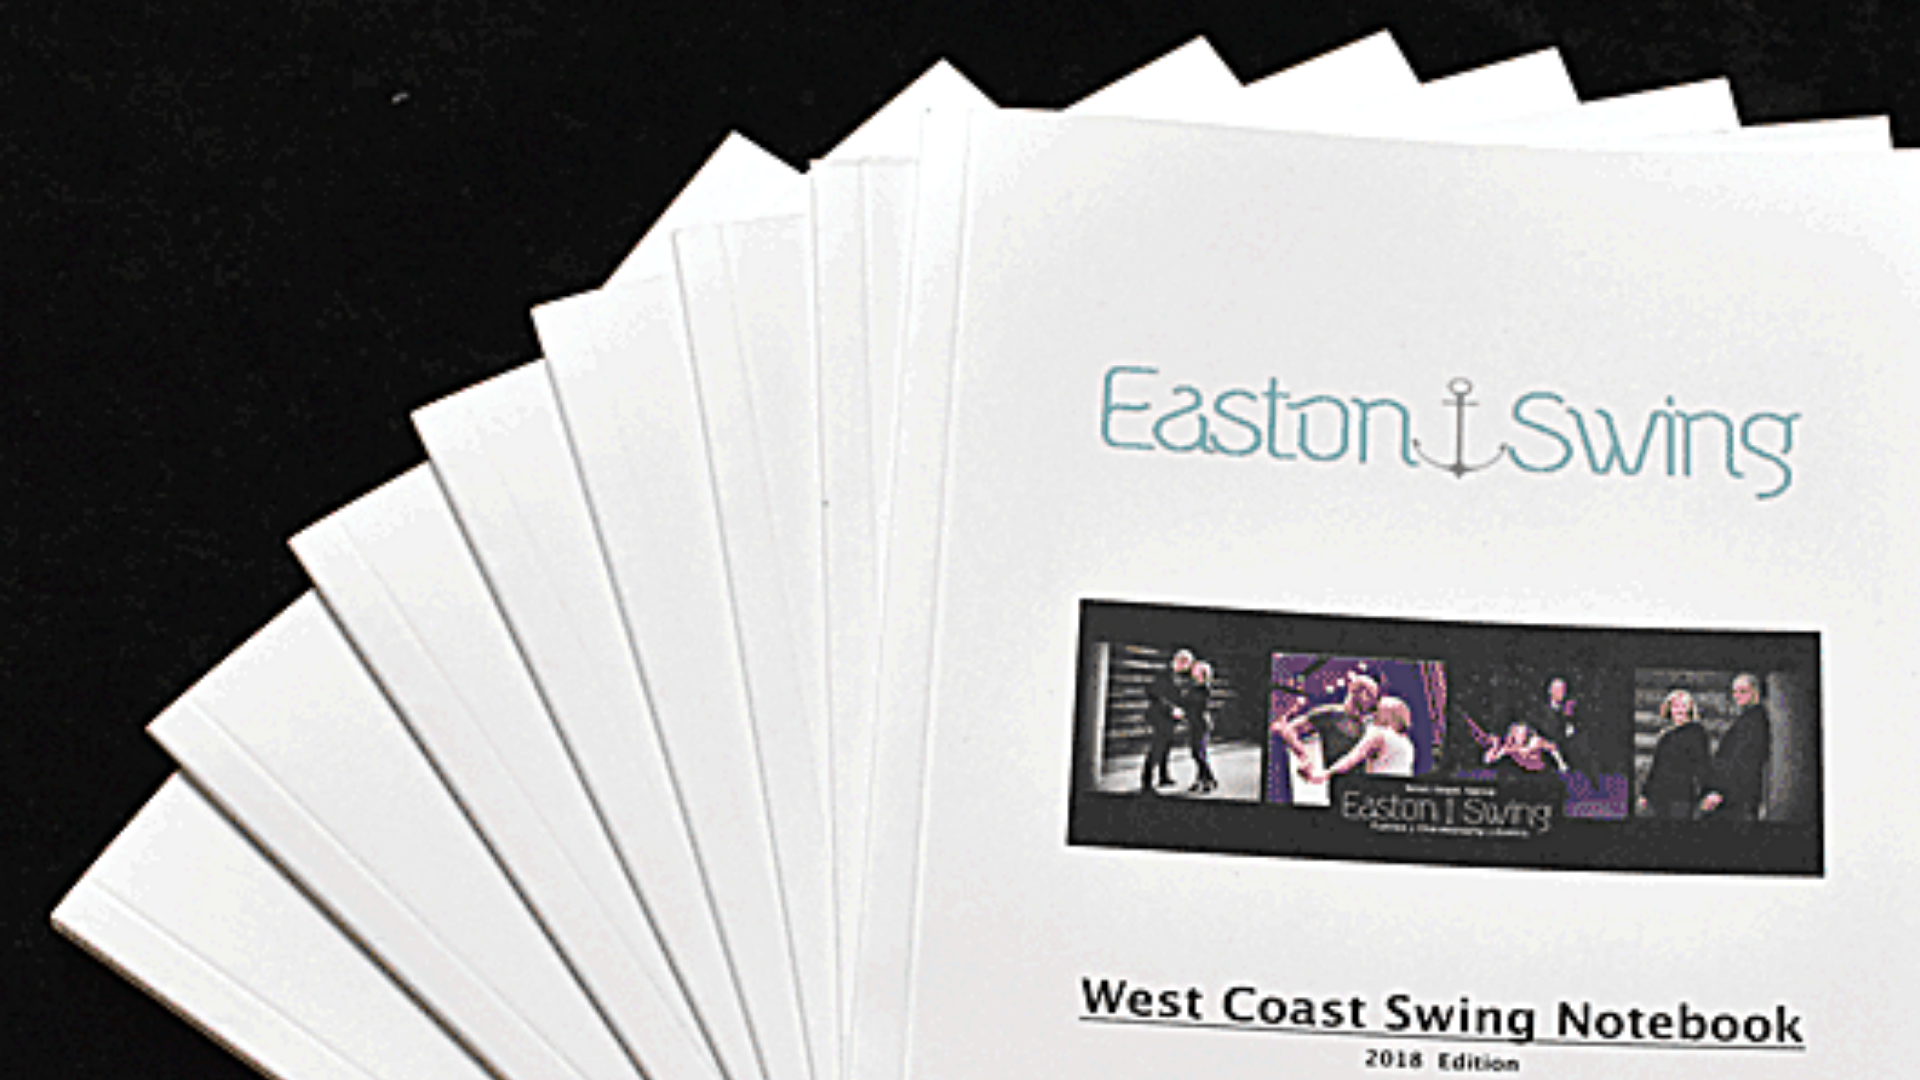 West Coast Swing notebook for Levels 1-3 photographed on a black background